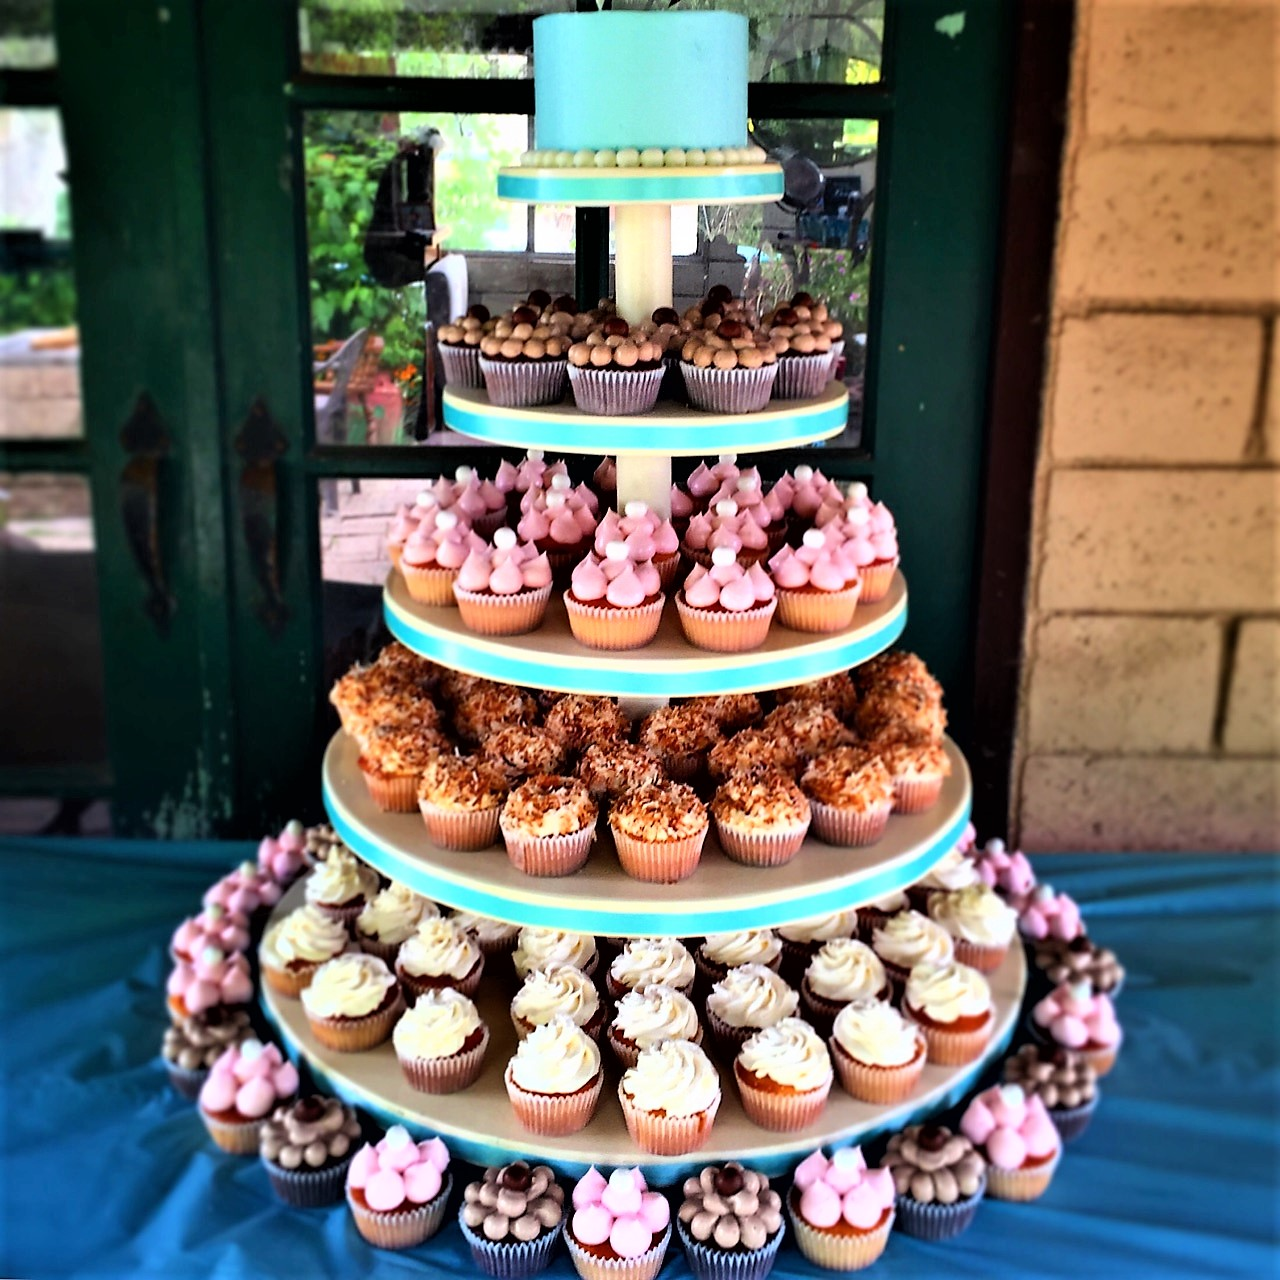 "124 cupcakes, 6"" classic simple cutting cake"